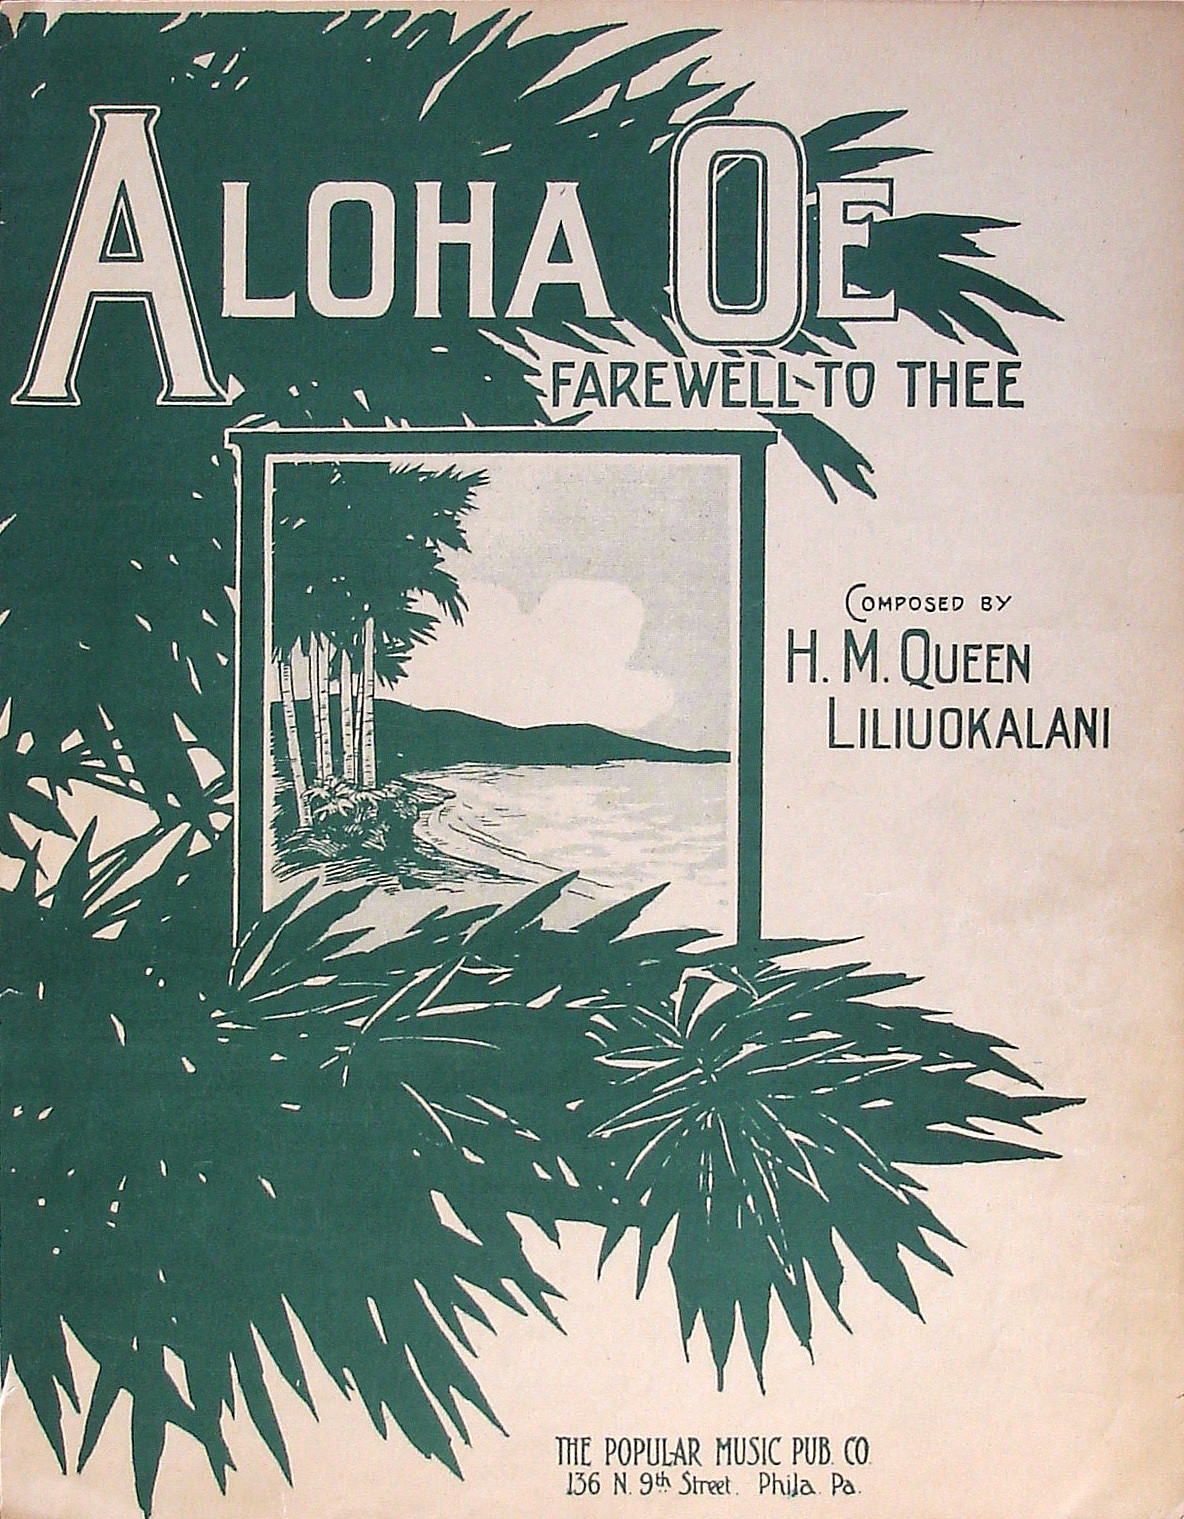 Aloha Oe (Farewell to Thee) - H. M. Queen Liliuokalani - Arthur Lange - Large Format